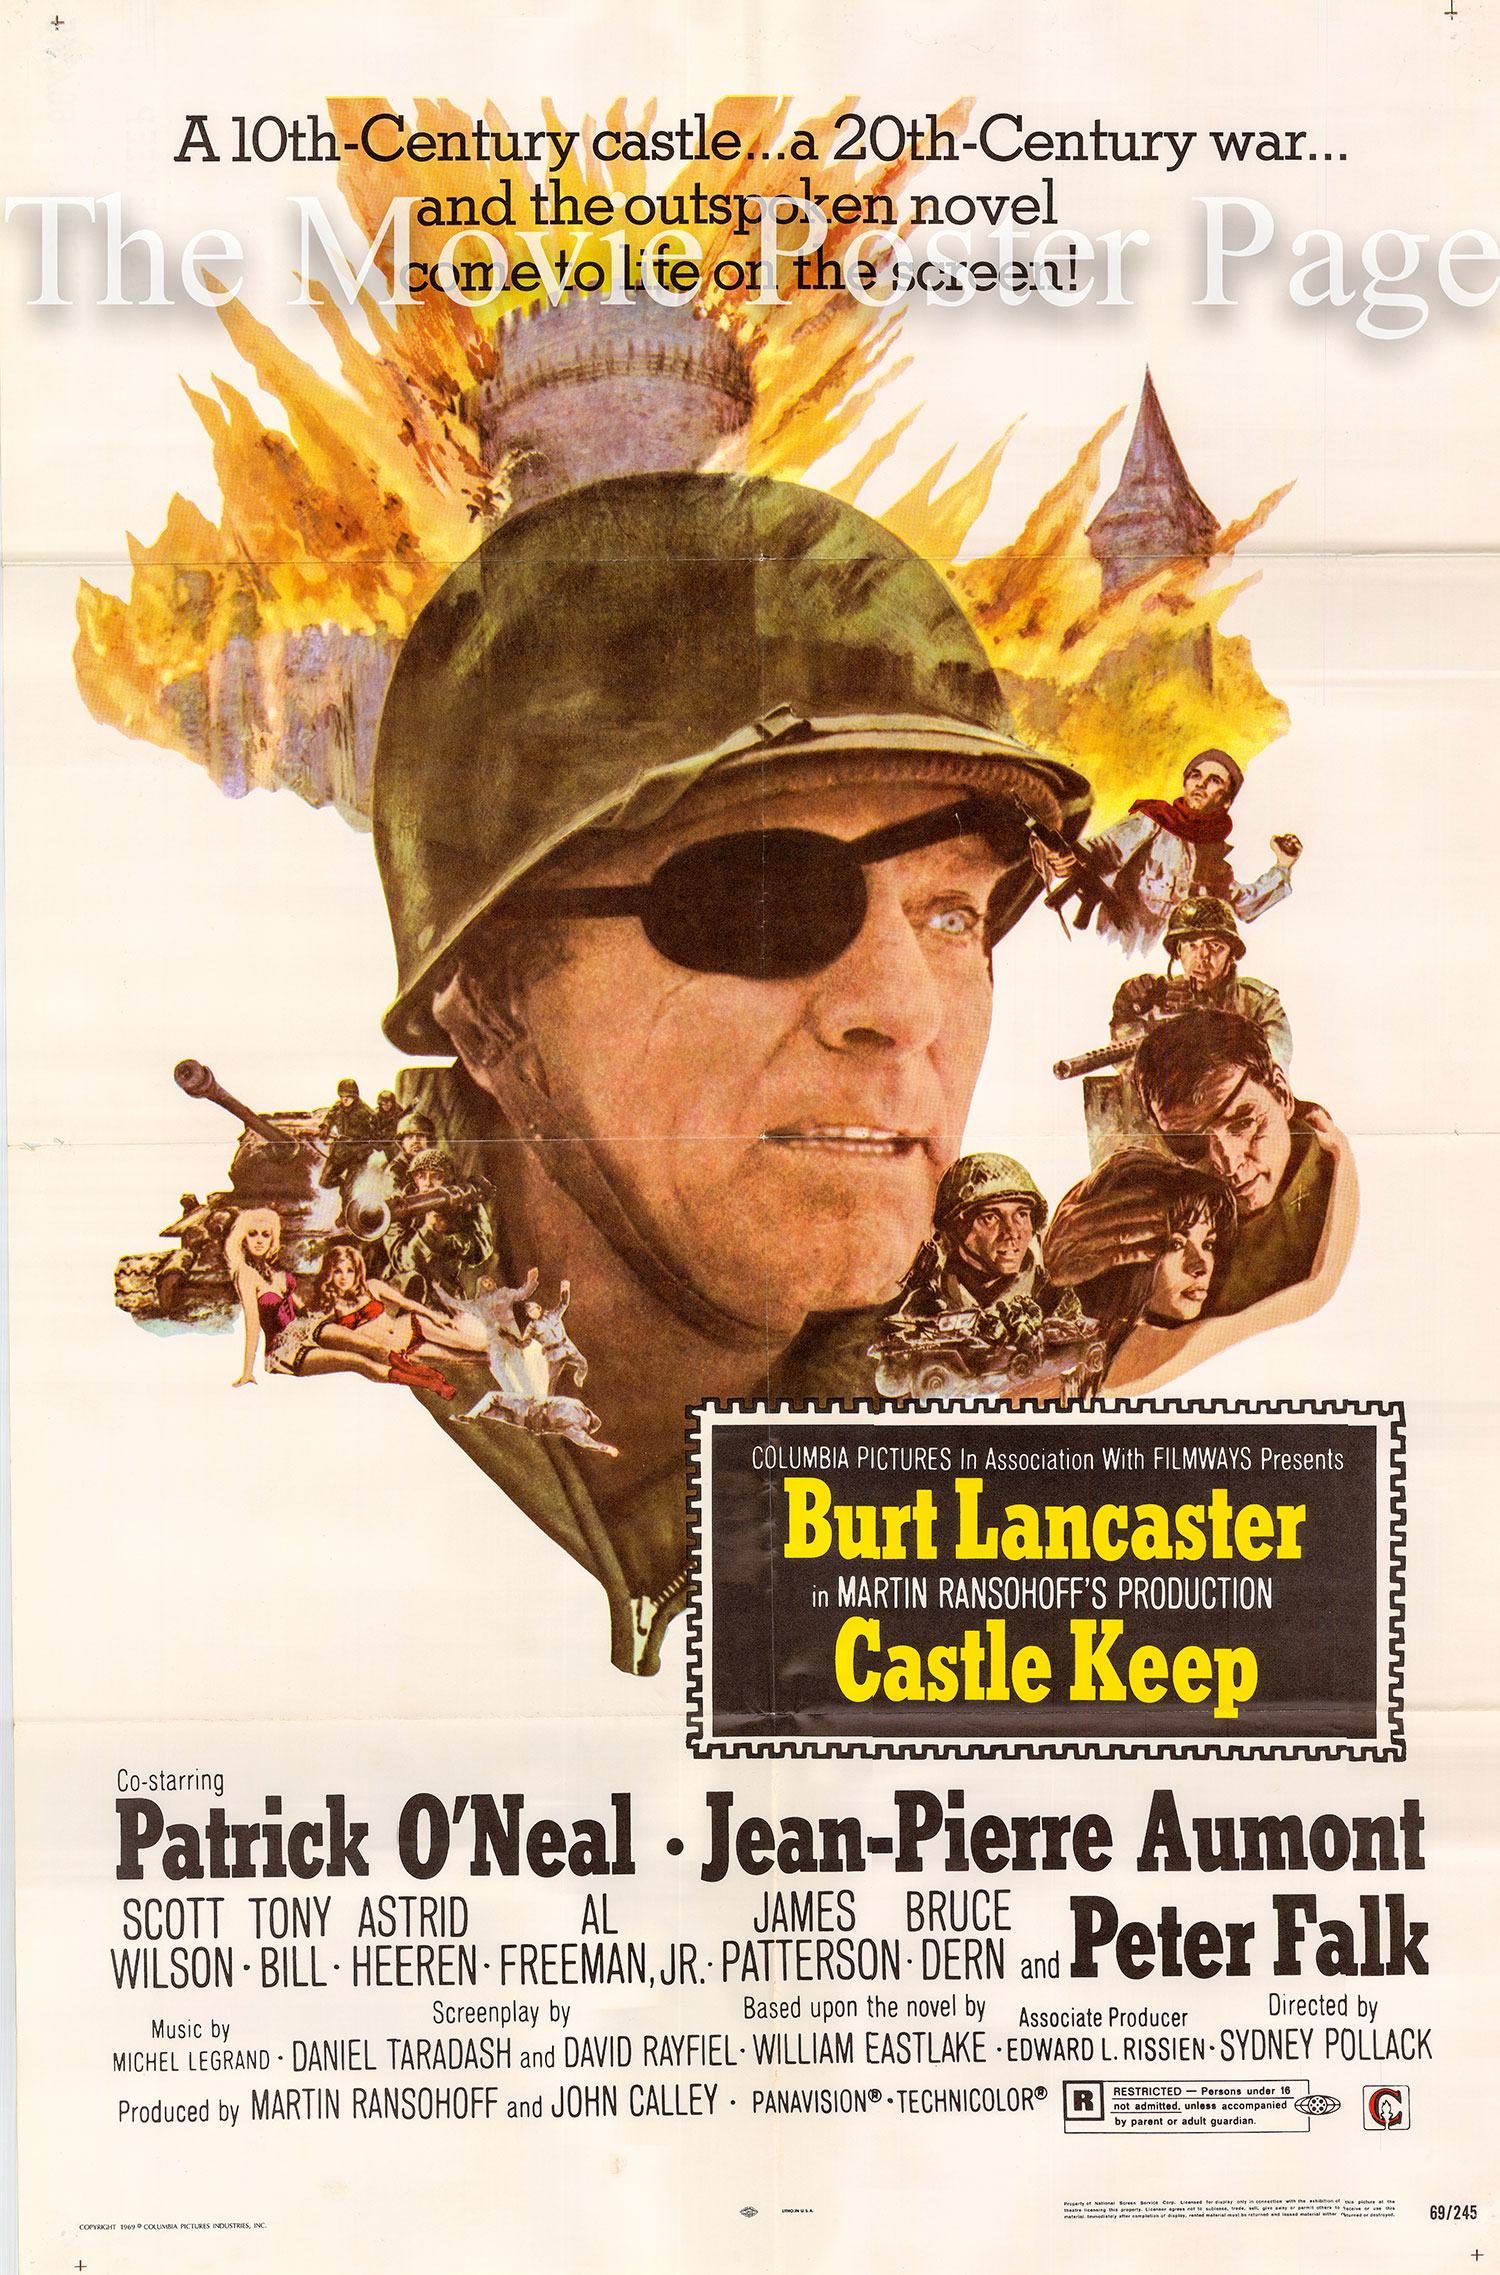 Pictured is a US one-sheet poster for the 1969 Sydney Pollack film Castle Keep starring Burt Lancaster.